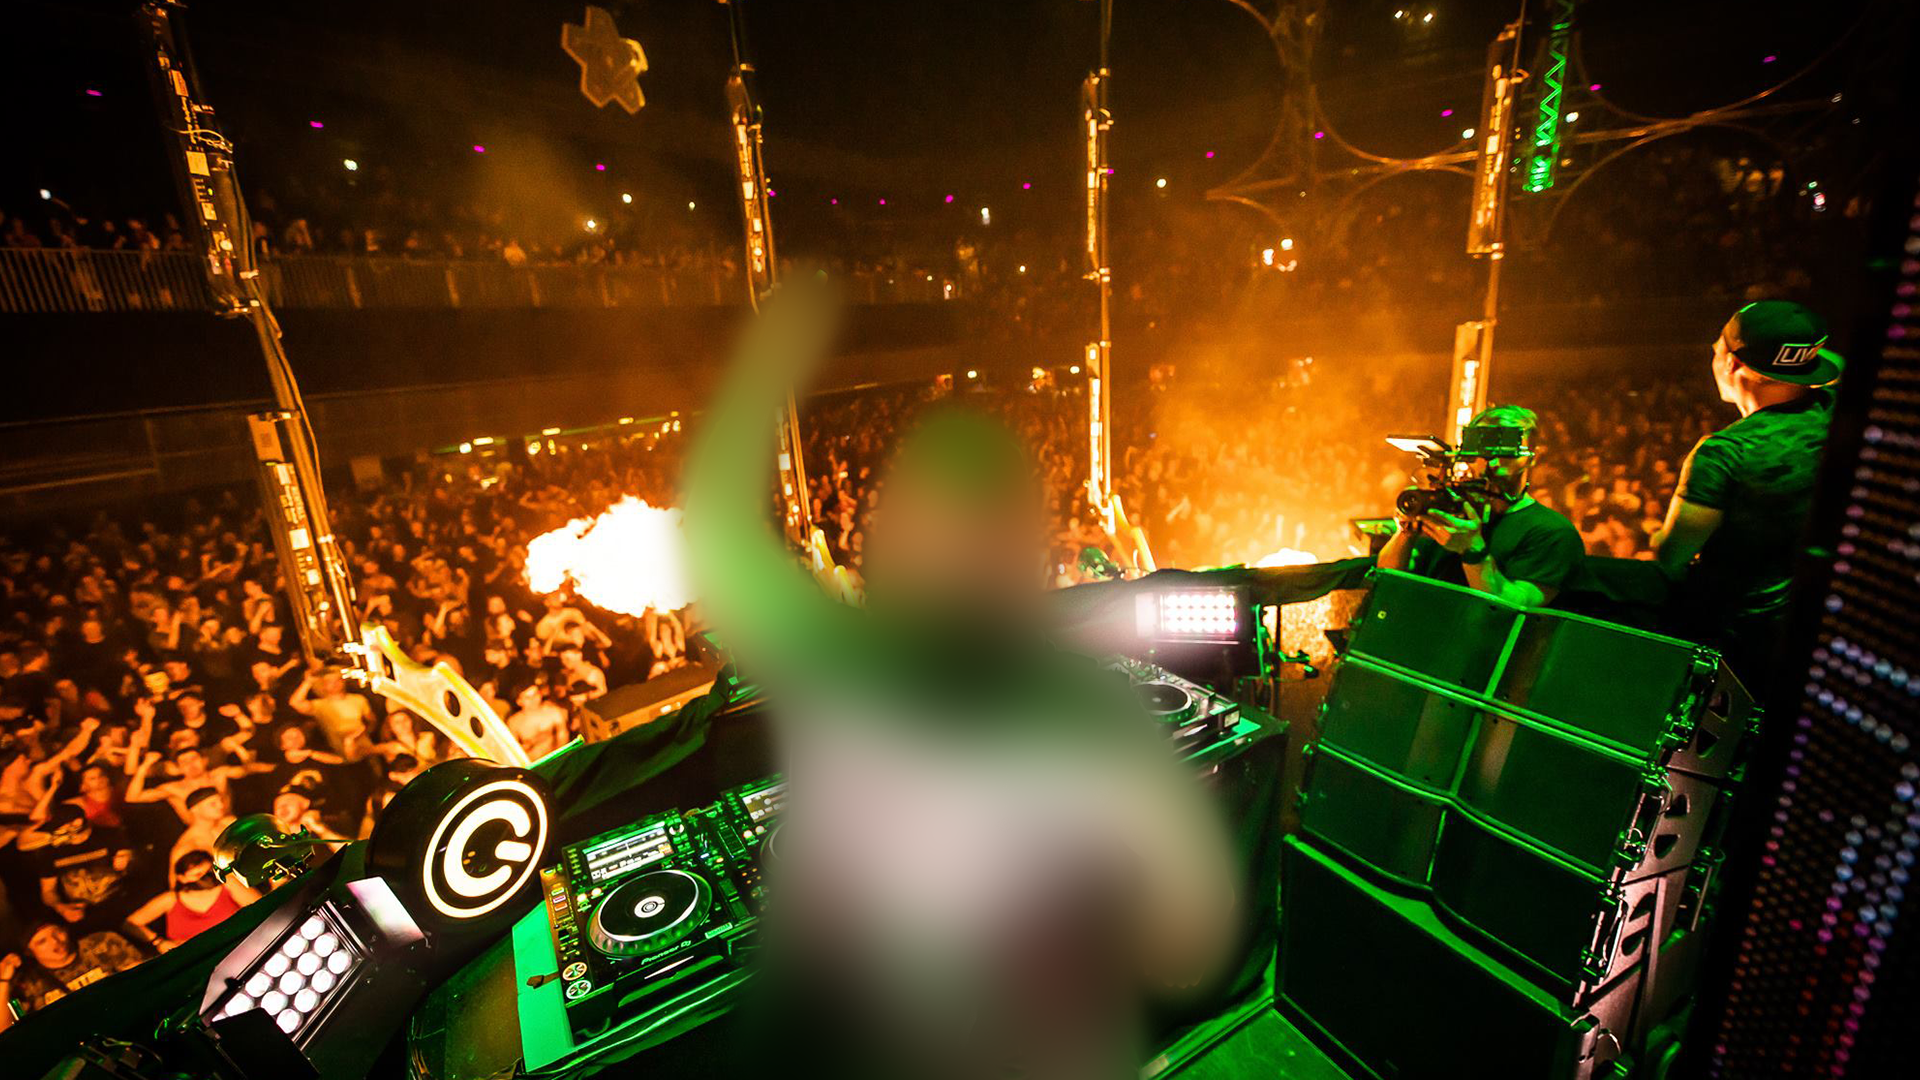 After 7 years, this DJ ends his Hardstyle career.